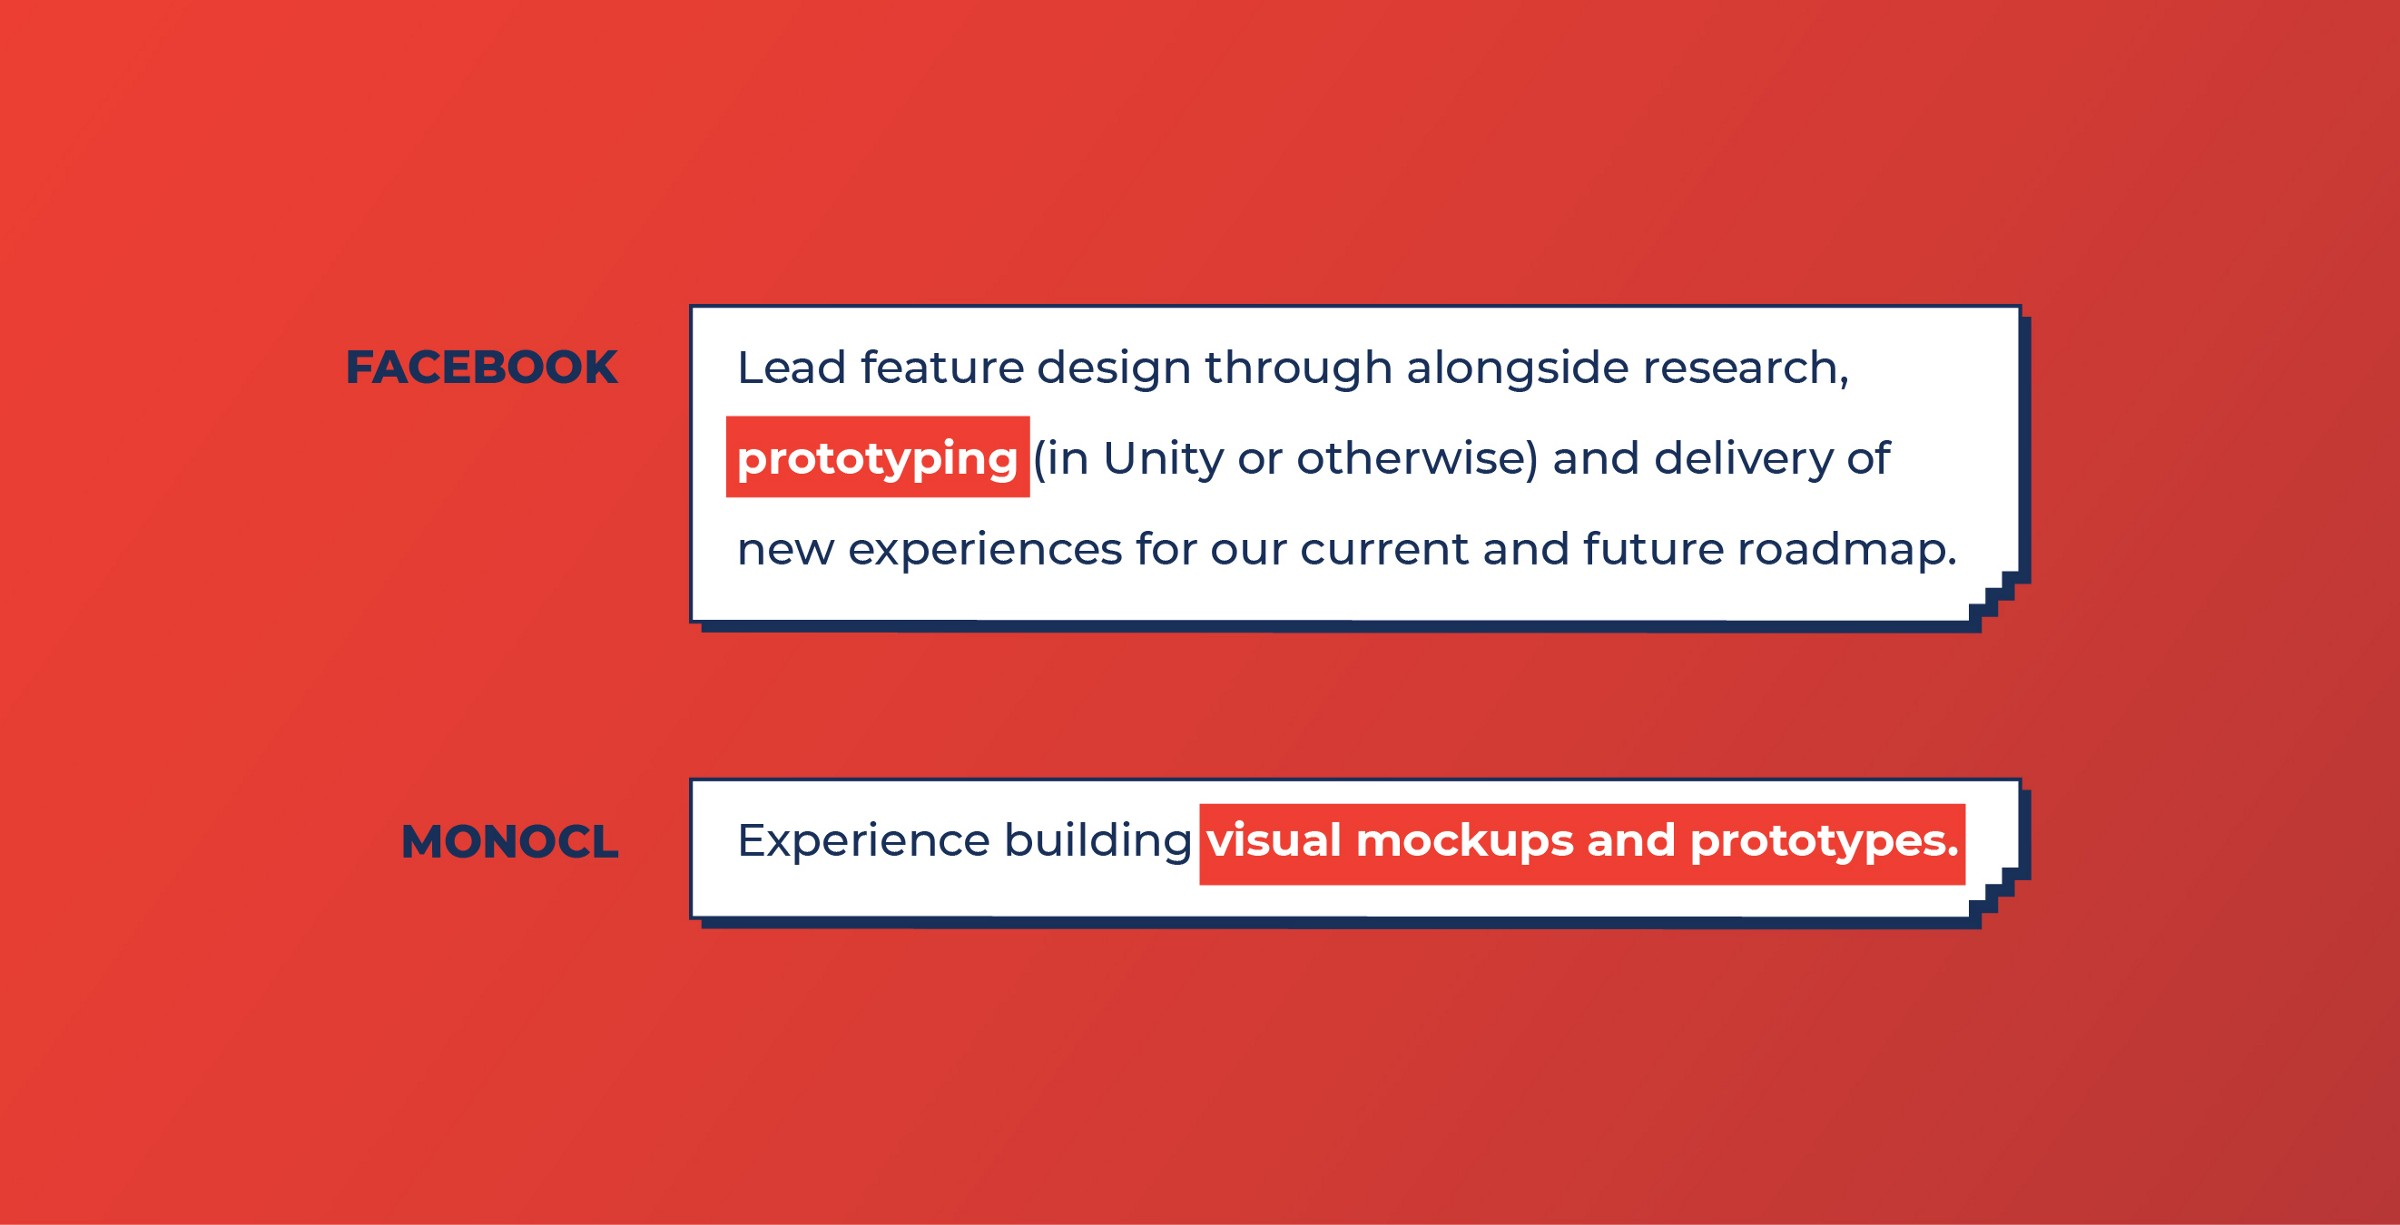 Facebook and Monocl look for Prototyping work from Product designers